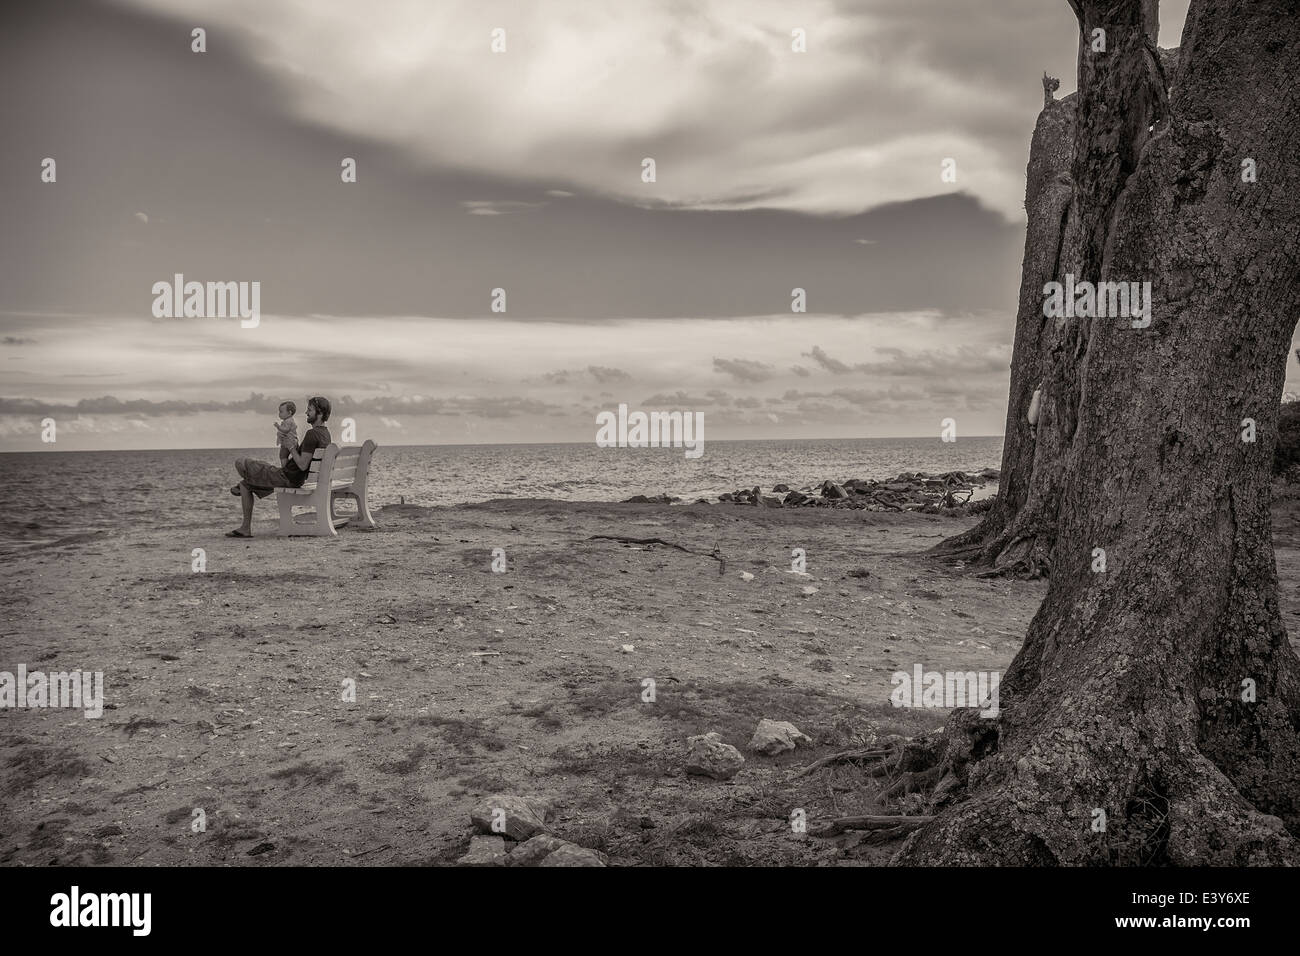 Black and white image of father and toddler daughter on beach bench - Stock Image